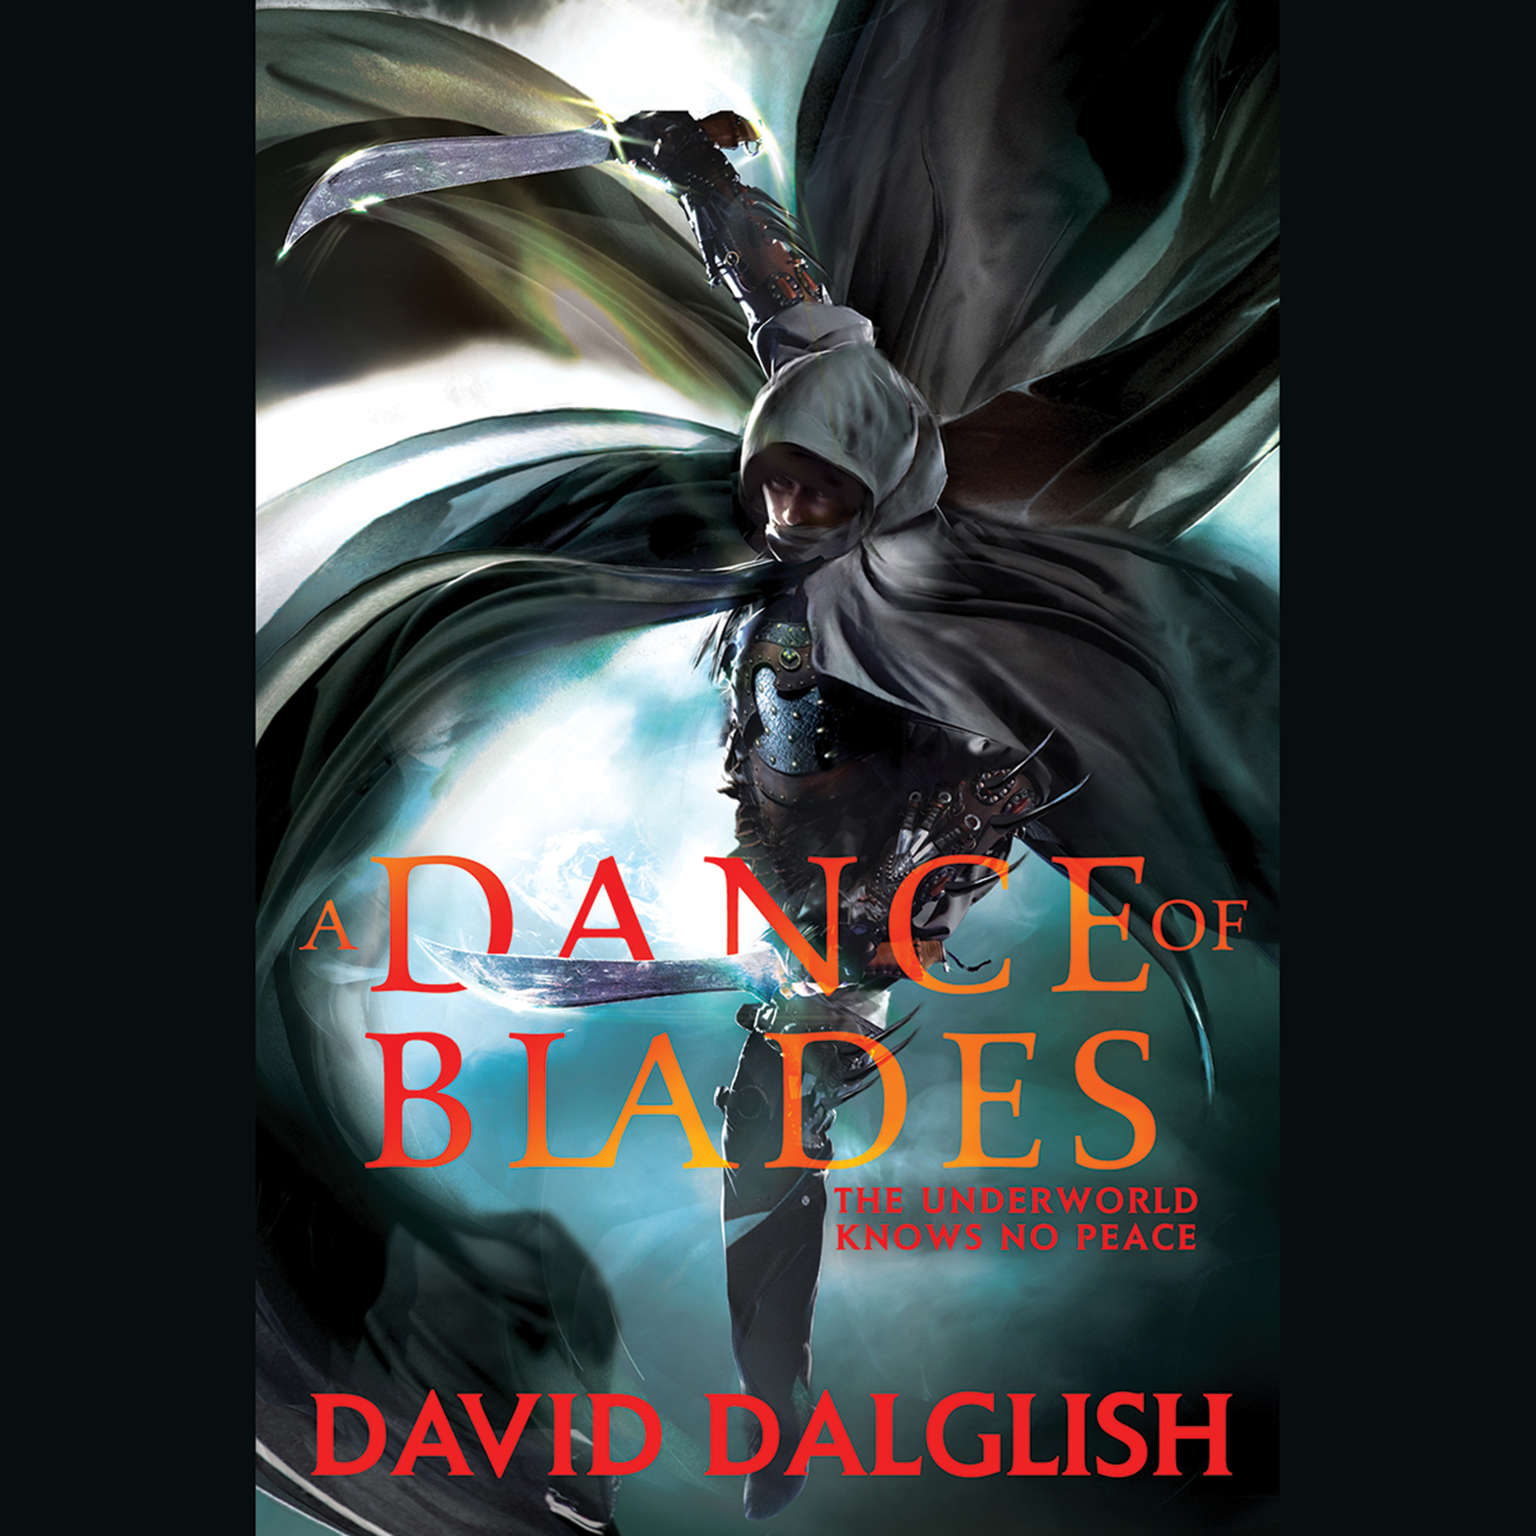 Printable A Dance of Blades Audiobook Cover Art